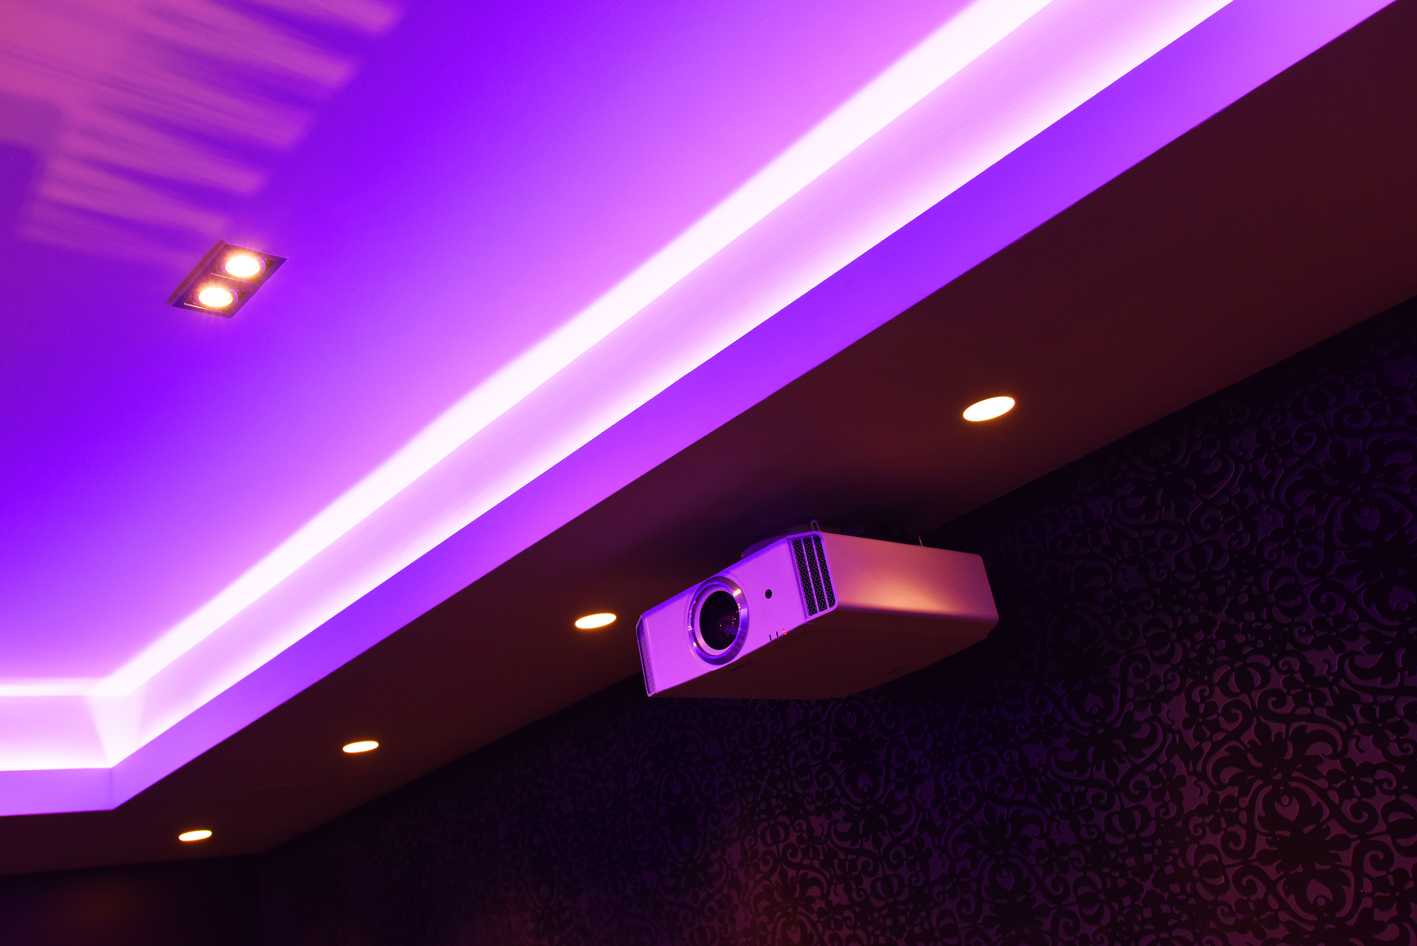 5 reasons to have your home cinema specified 7th august 2017 expert advice from iq furniture